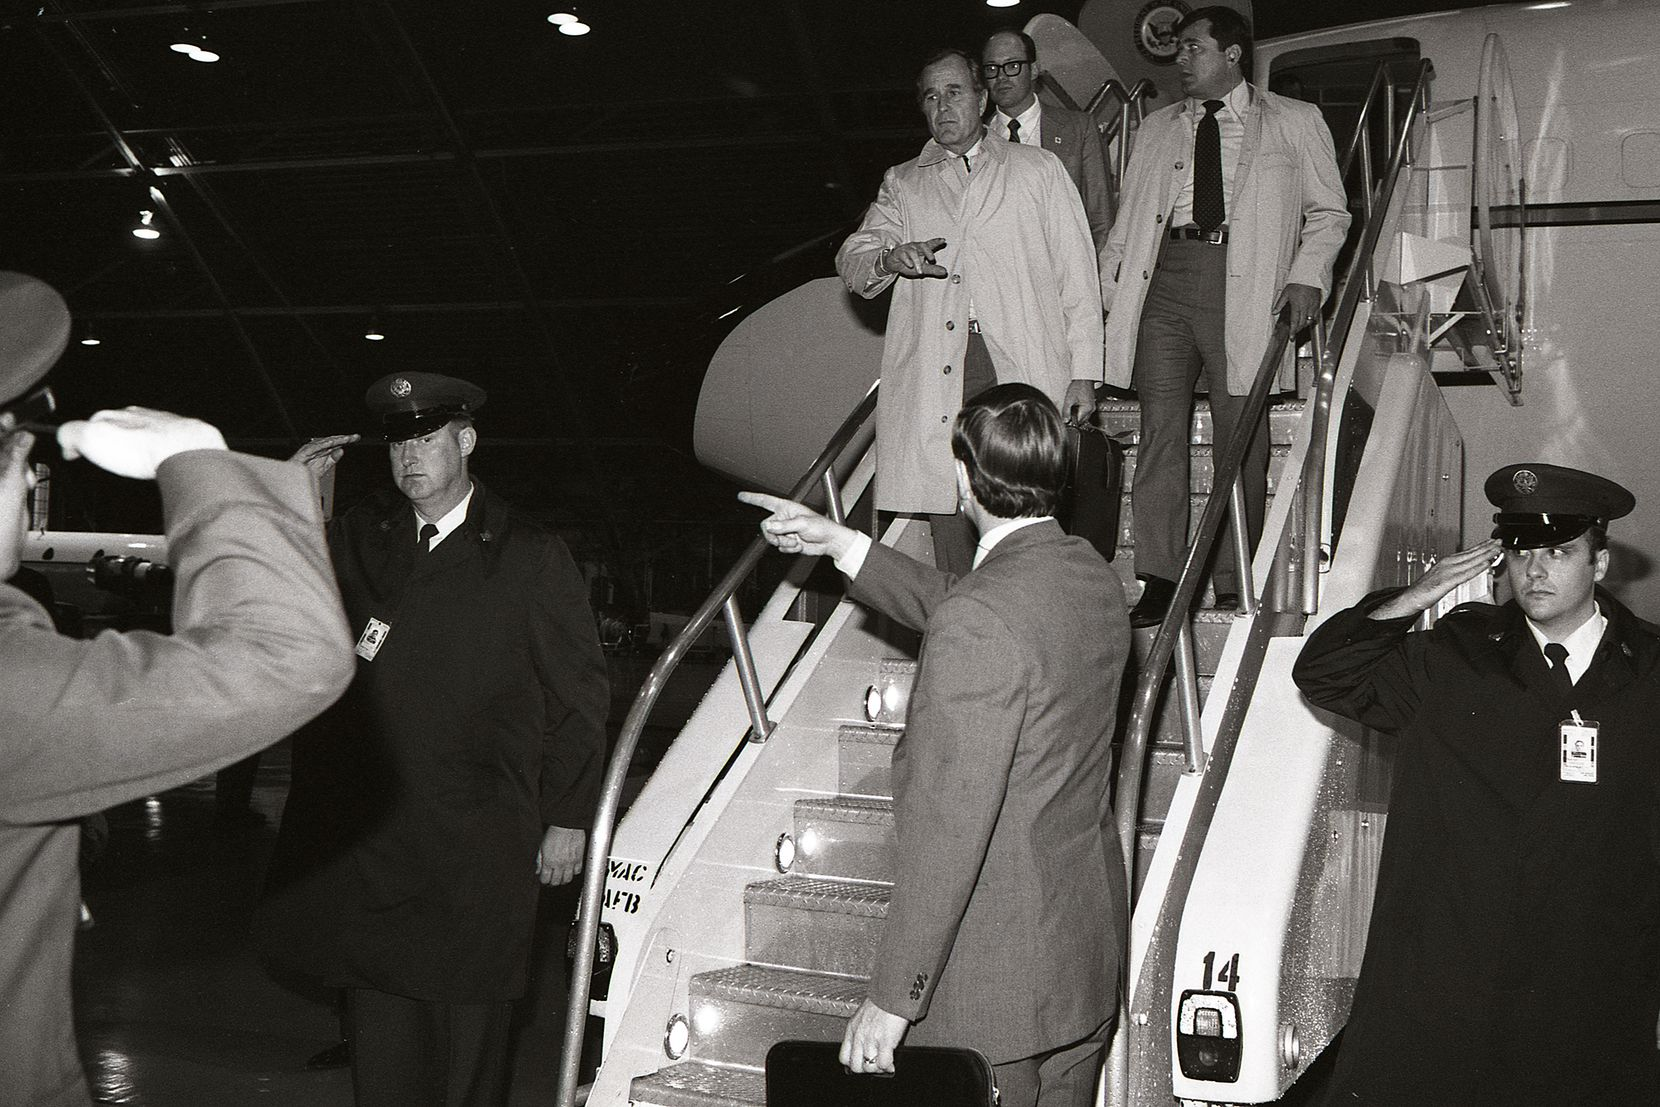 1981: While sharpshooters watched from the hangar roof, Vice President Bush arrives at Andrews Air Force Base from Texas after the assassination attempt on President Reagan.